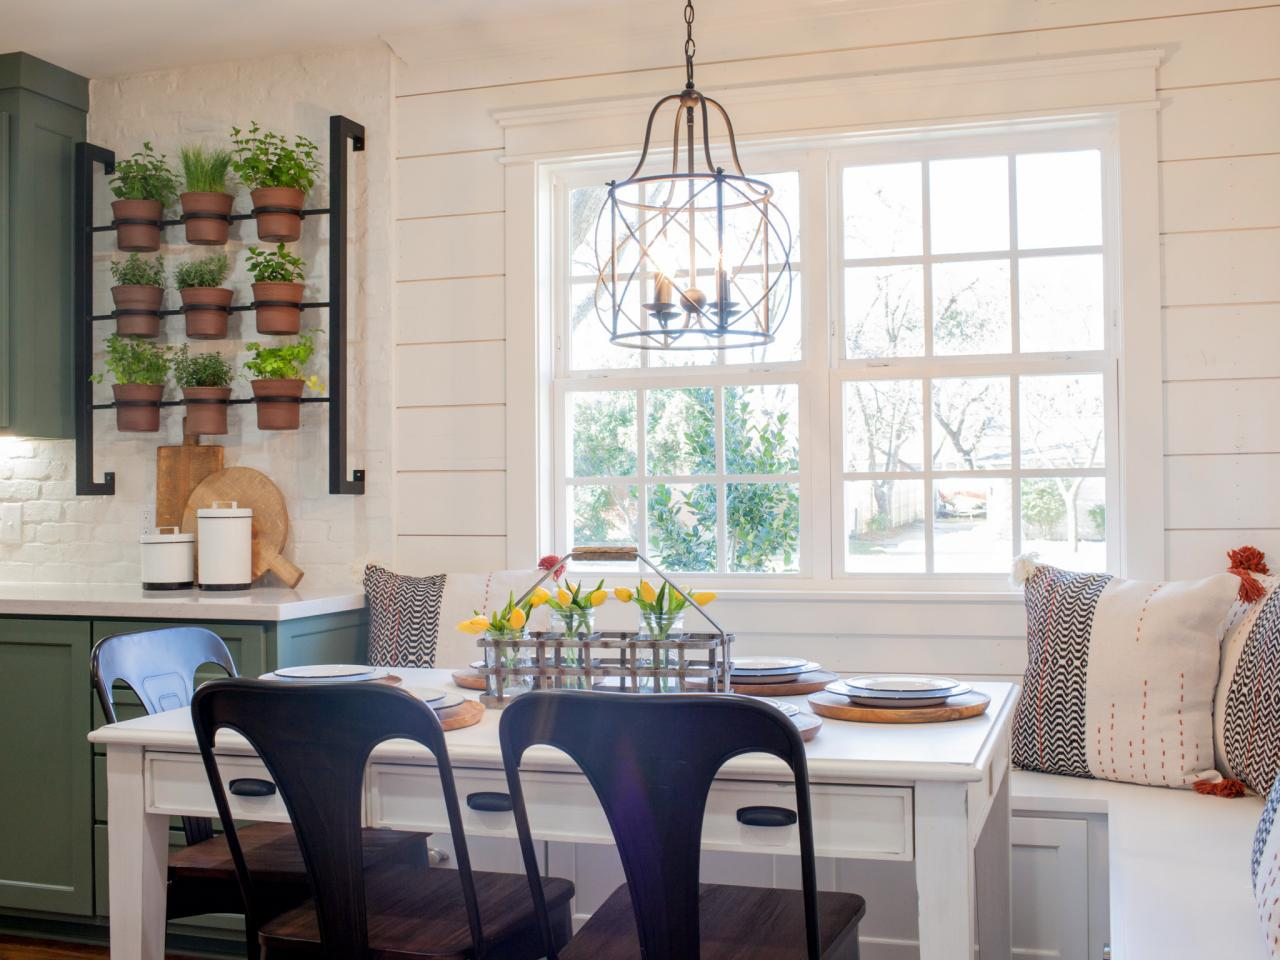 Country Breakfast Nook With Bench Seating Natural Lighting And Simple Table Setting